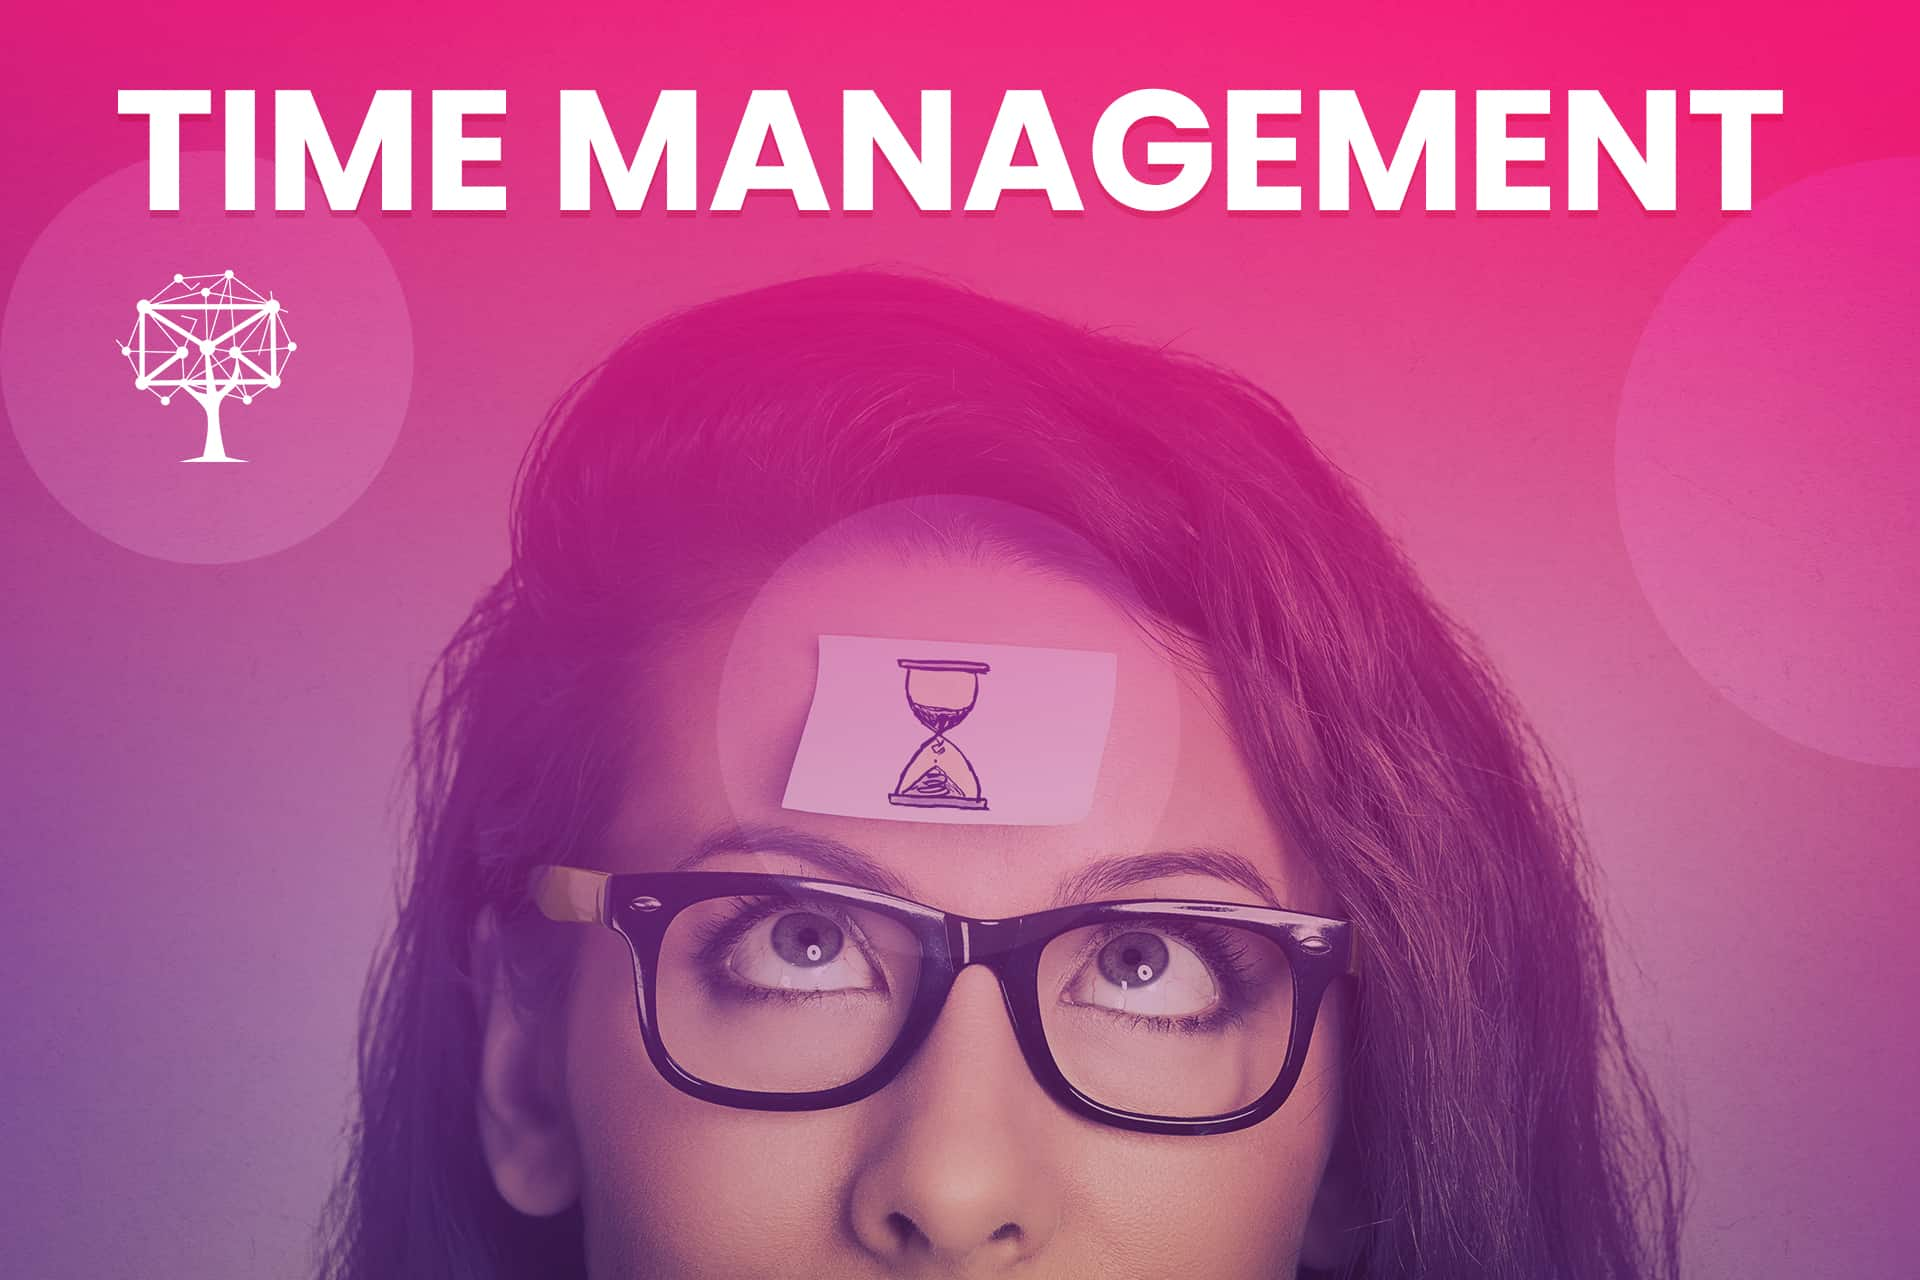 Time Management for customer service skill